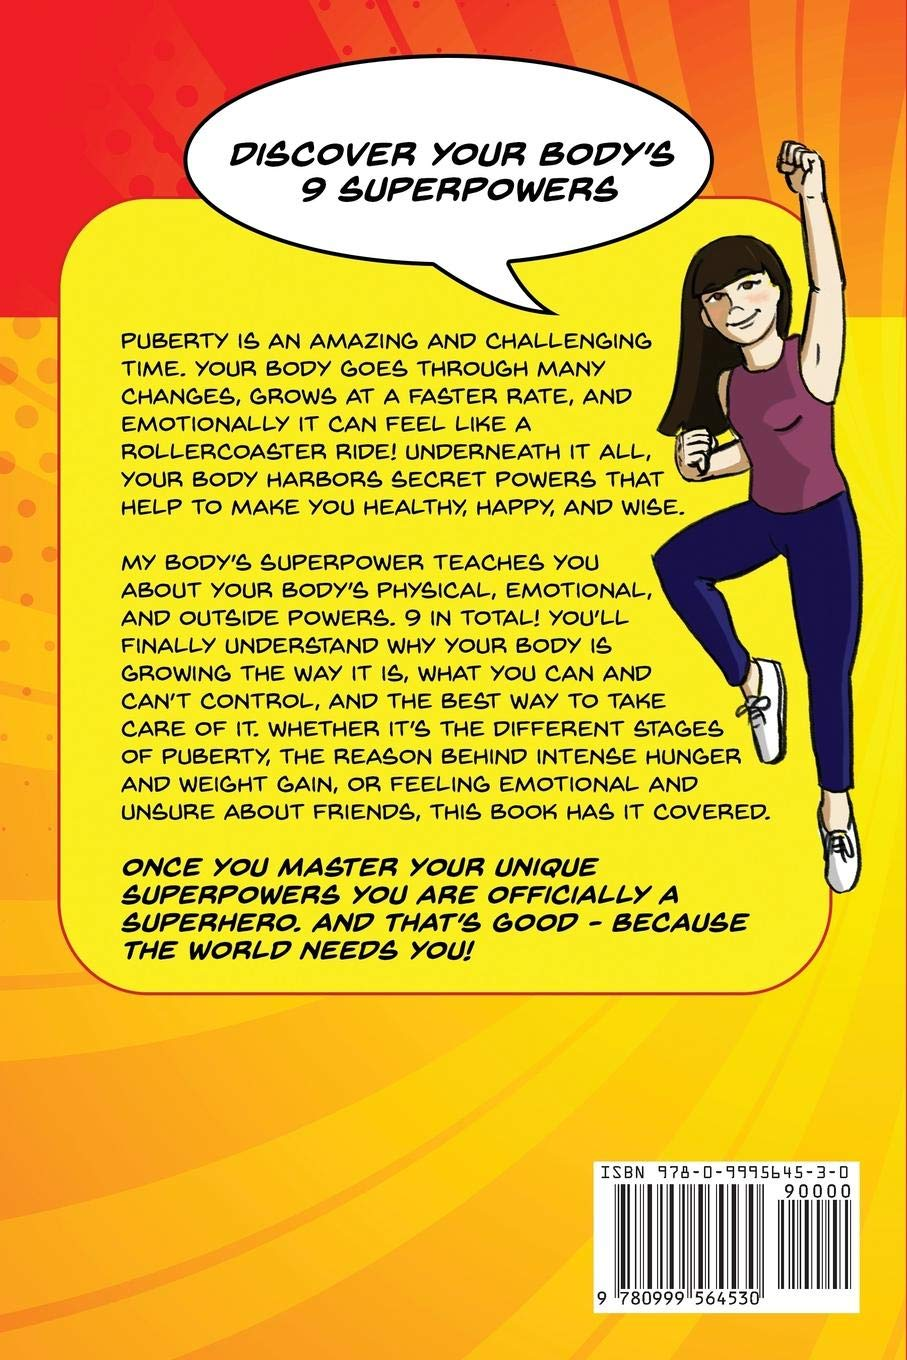 My Body's Superpower: The Girls' Guide to Growing Up Healthy During